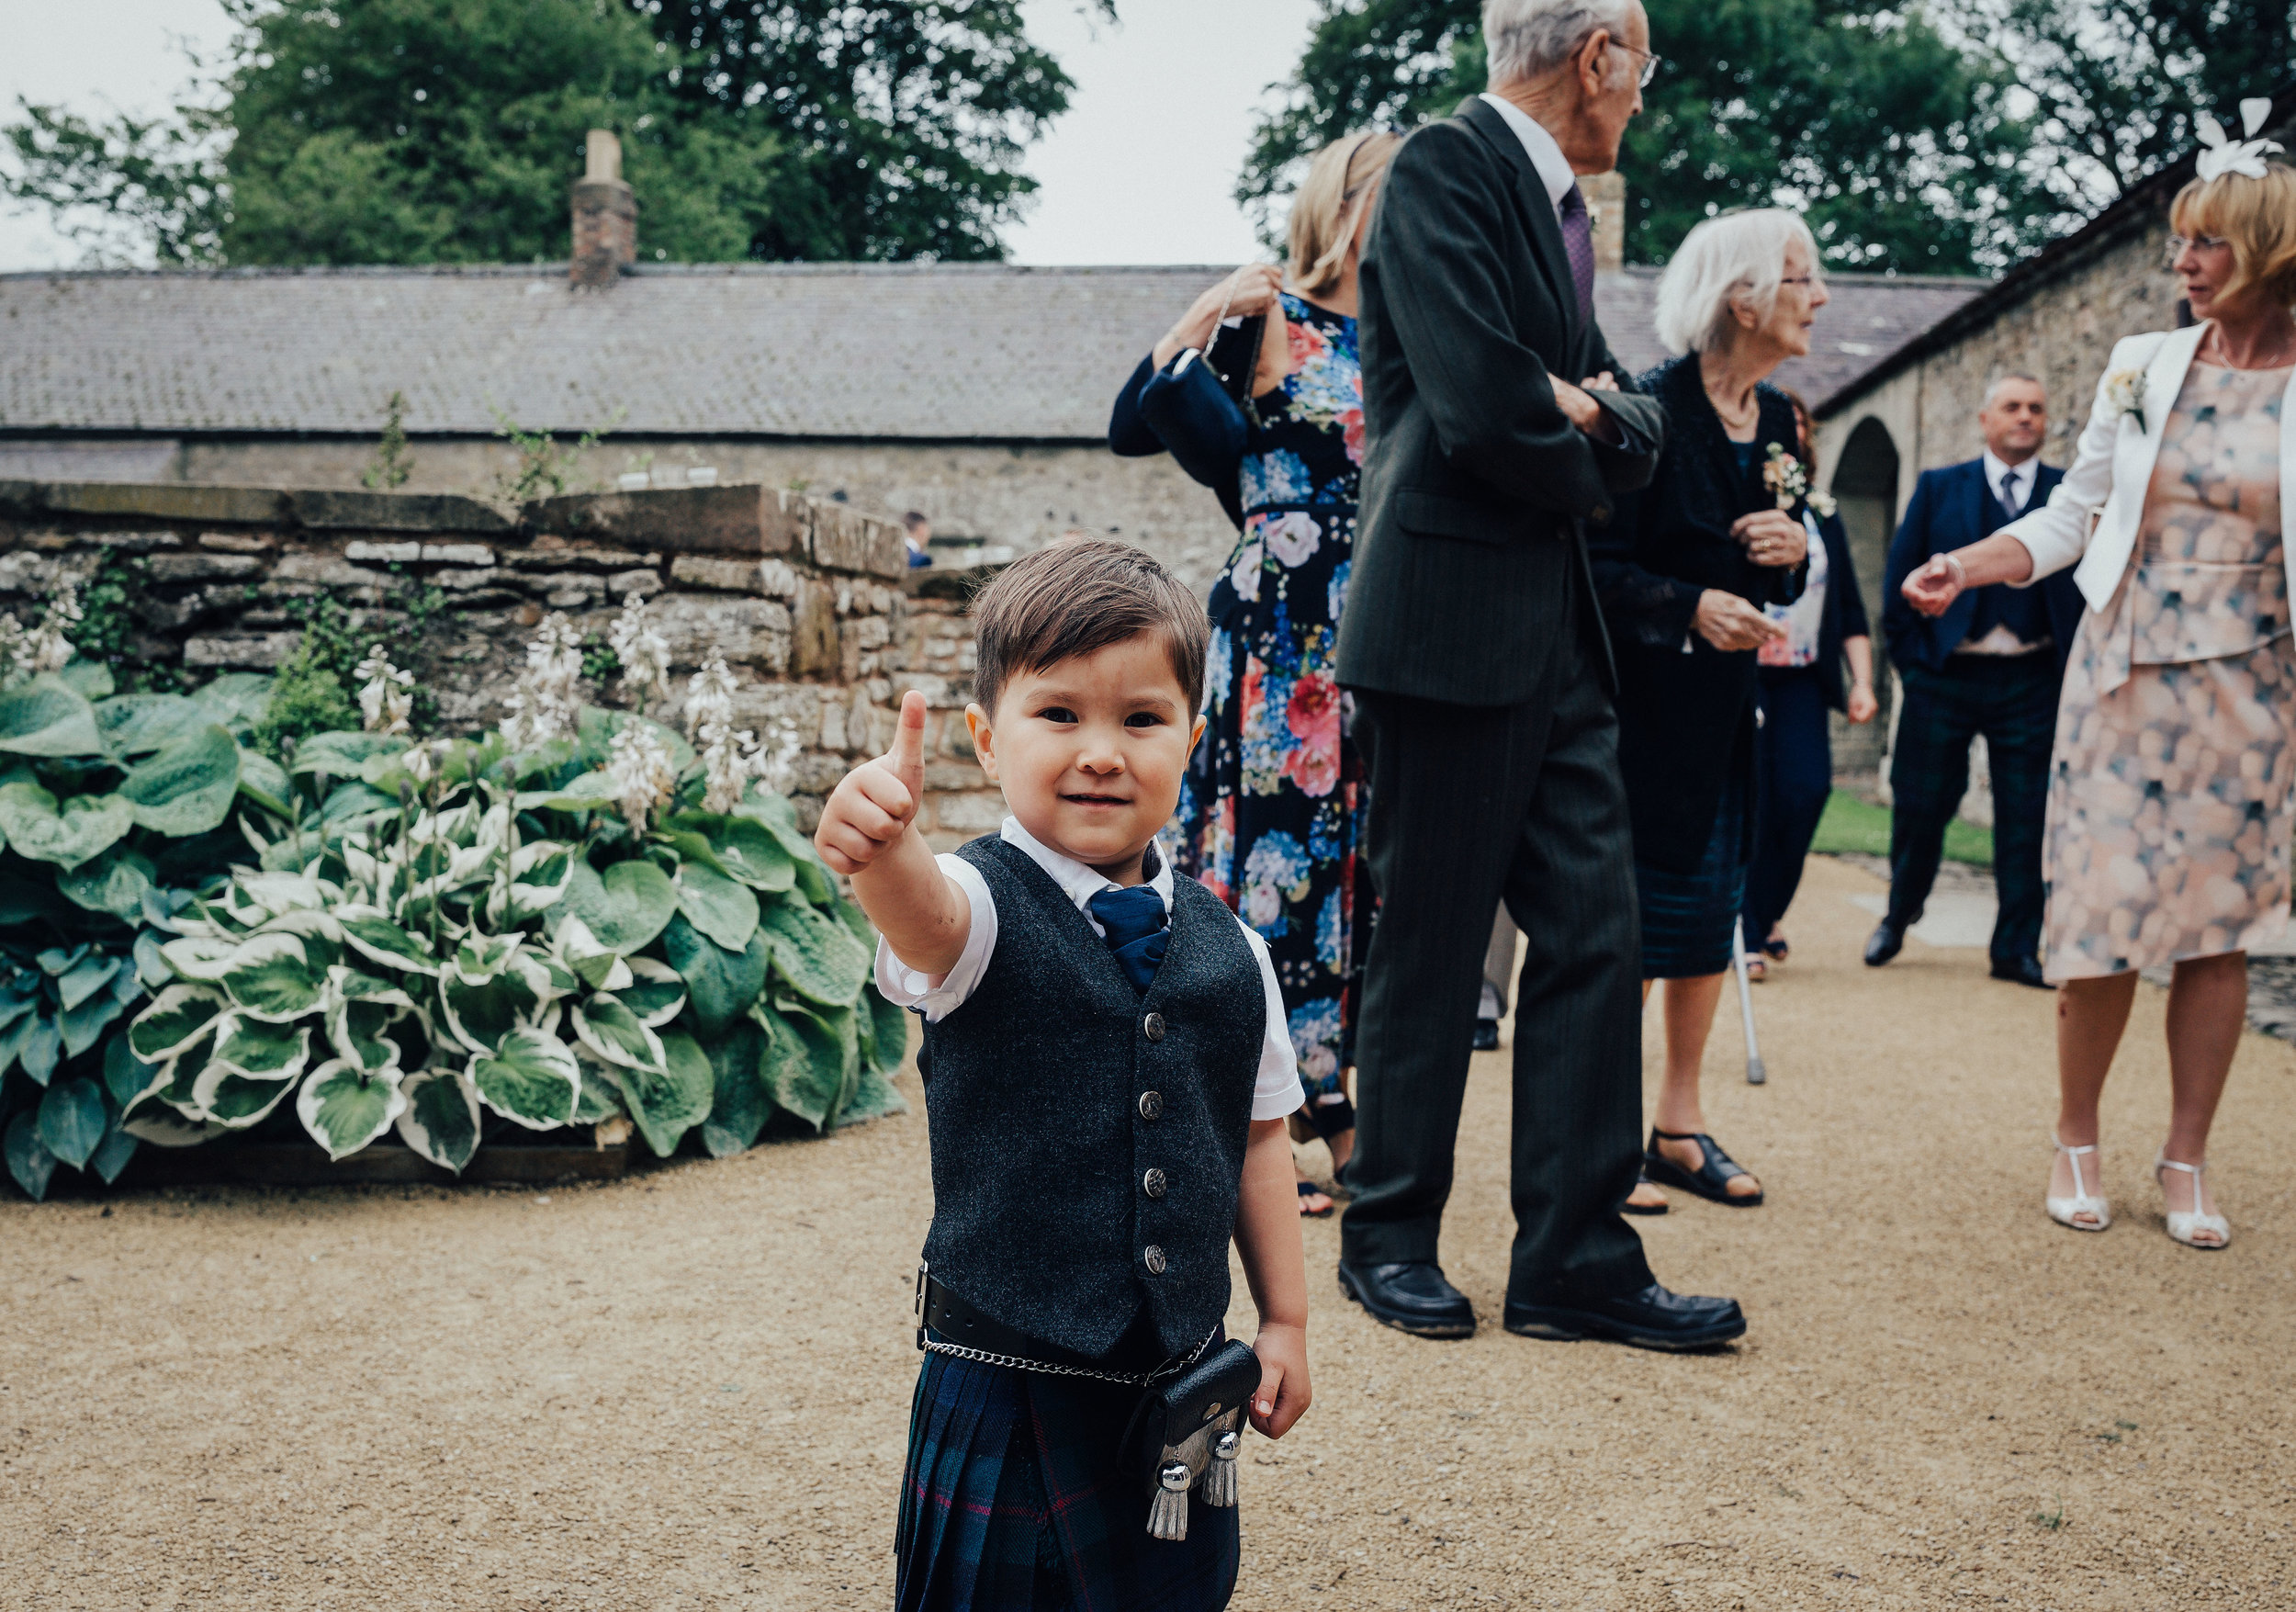 PJ_PHILLIPS_PHOTOGRAPHY_EDINBURGH_WEDDERBURN_BARNS_WEDDING_EDINBURGH_WEDDING_PHOTOGRAPHER_81.jpg